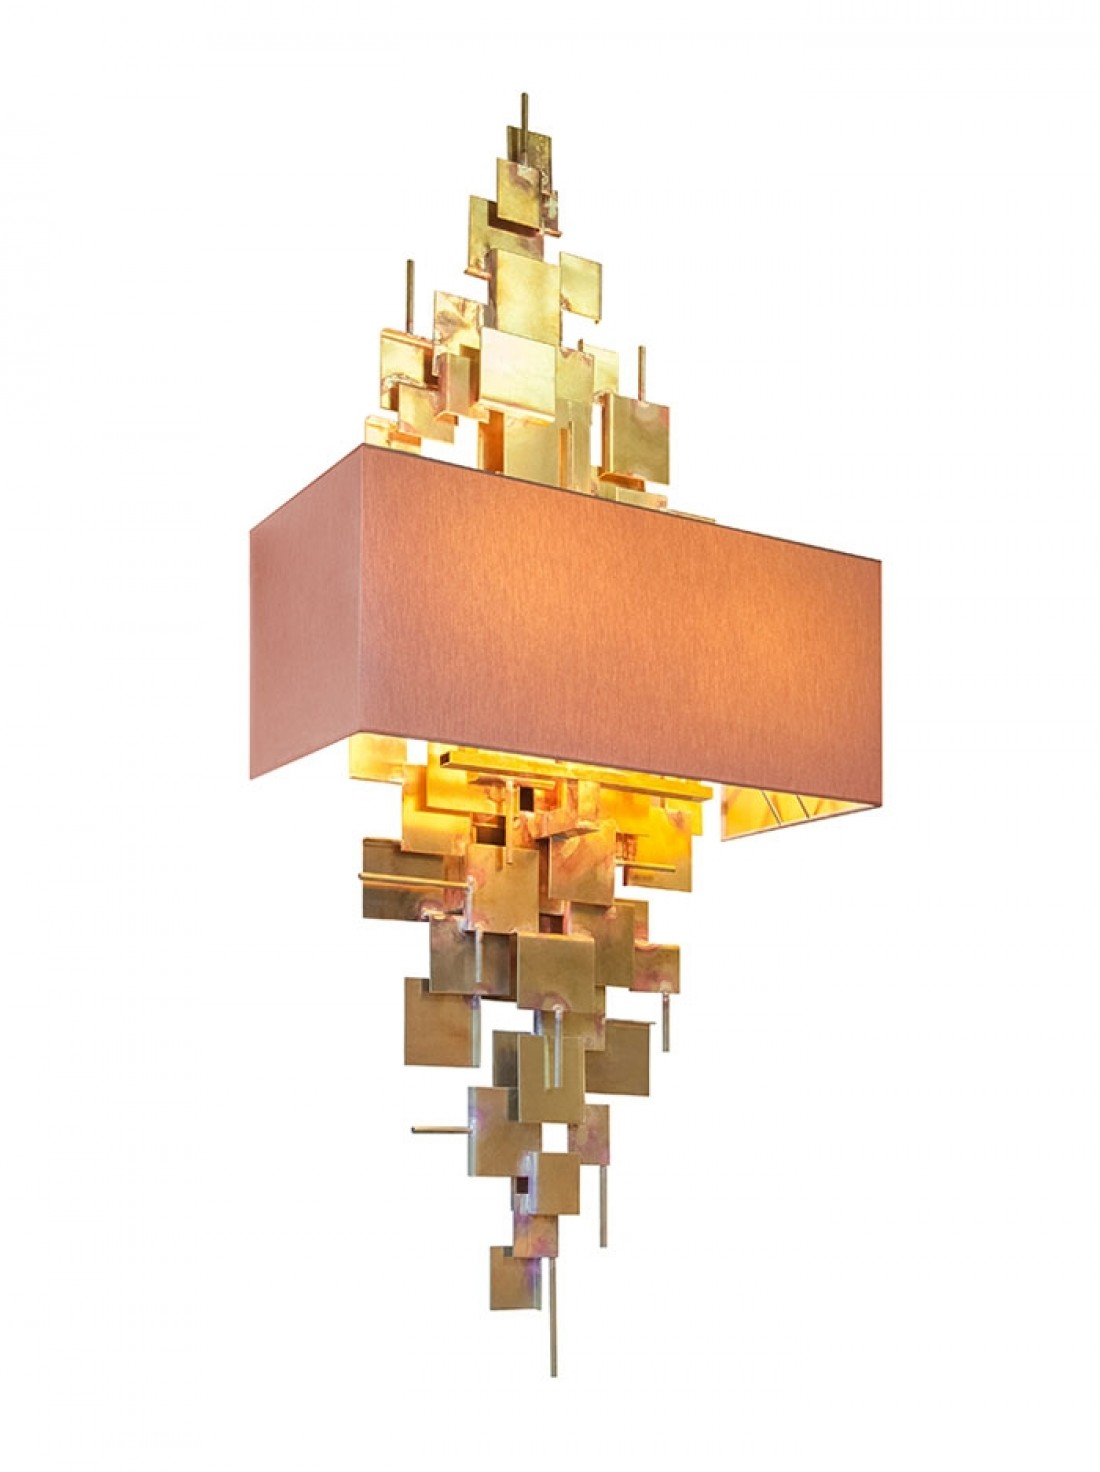 Design Wandlampen Abe Wandlamp Ruw Messing By Lotz Design Wandlampen